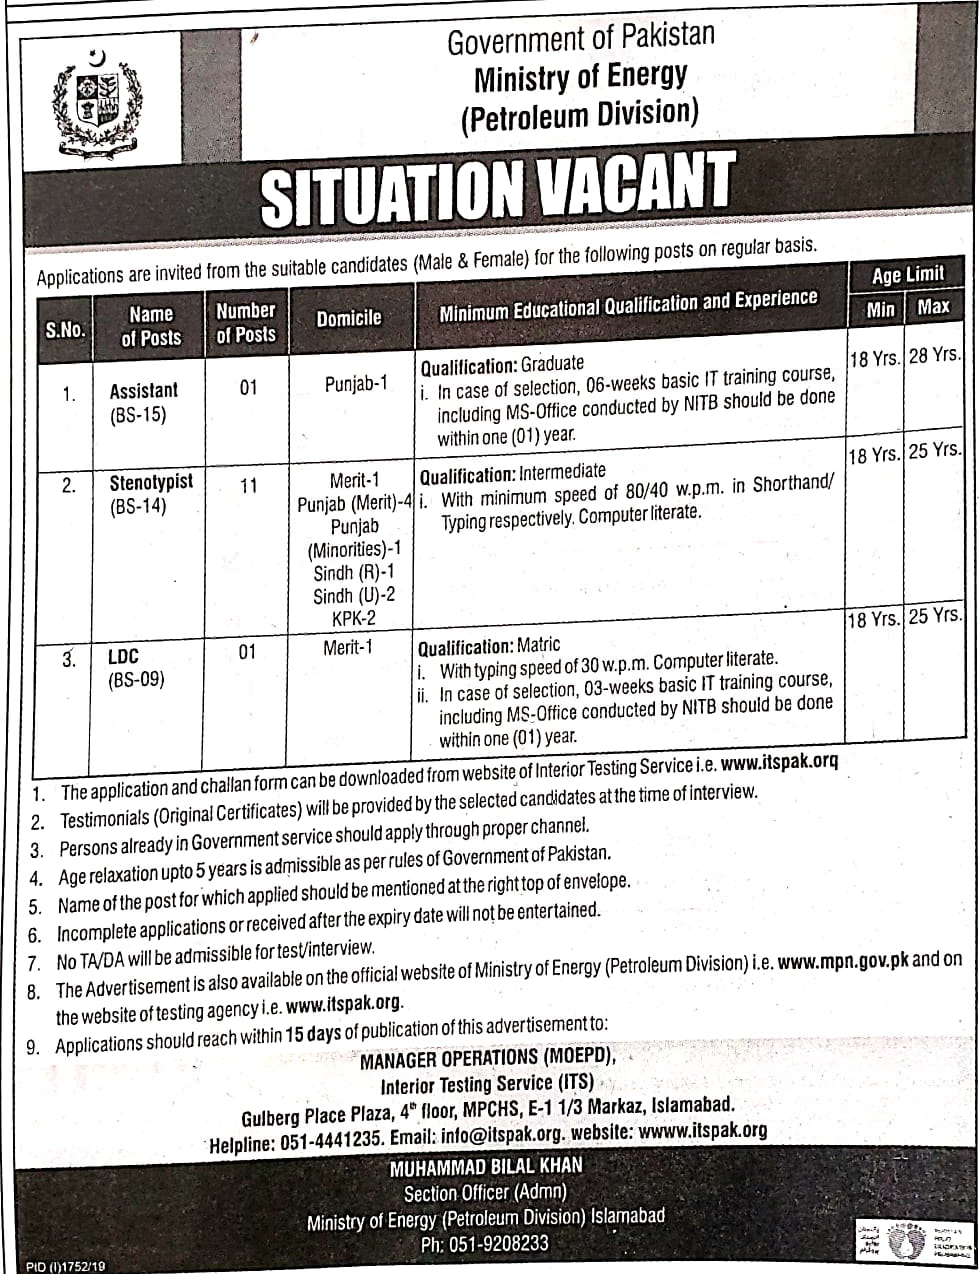 Ministry of Energy Petroleum Division ITS Jobs 2019 Application Form Roll No Slip